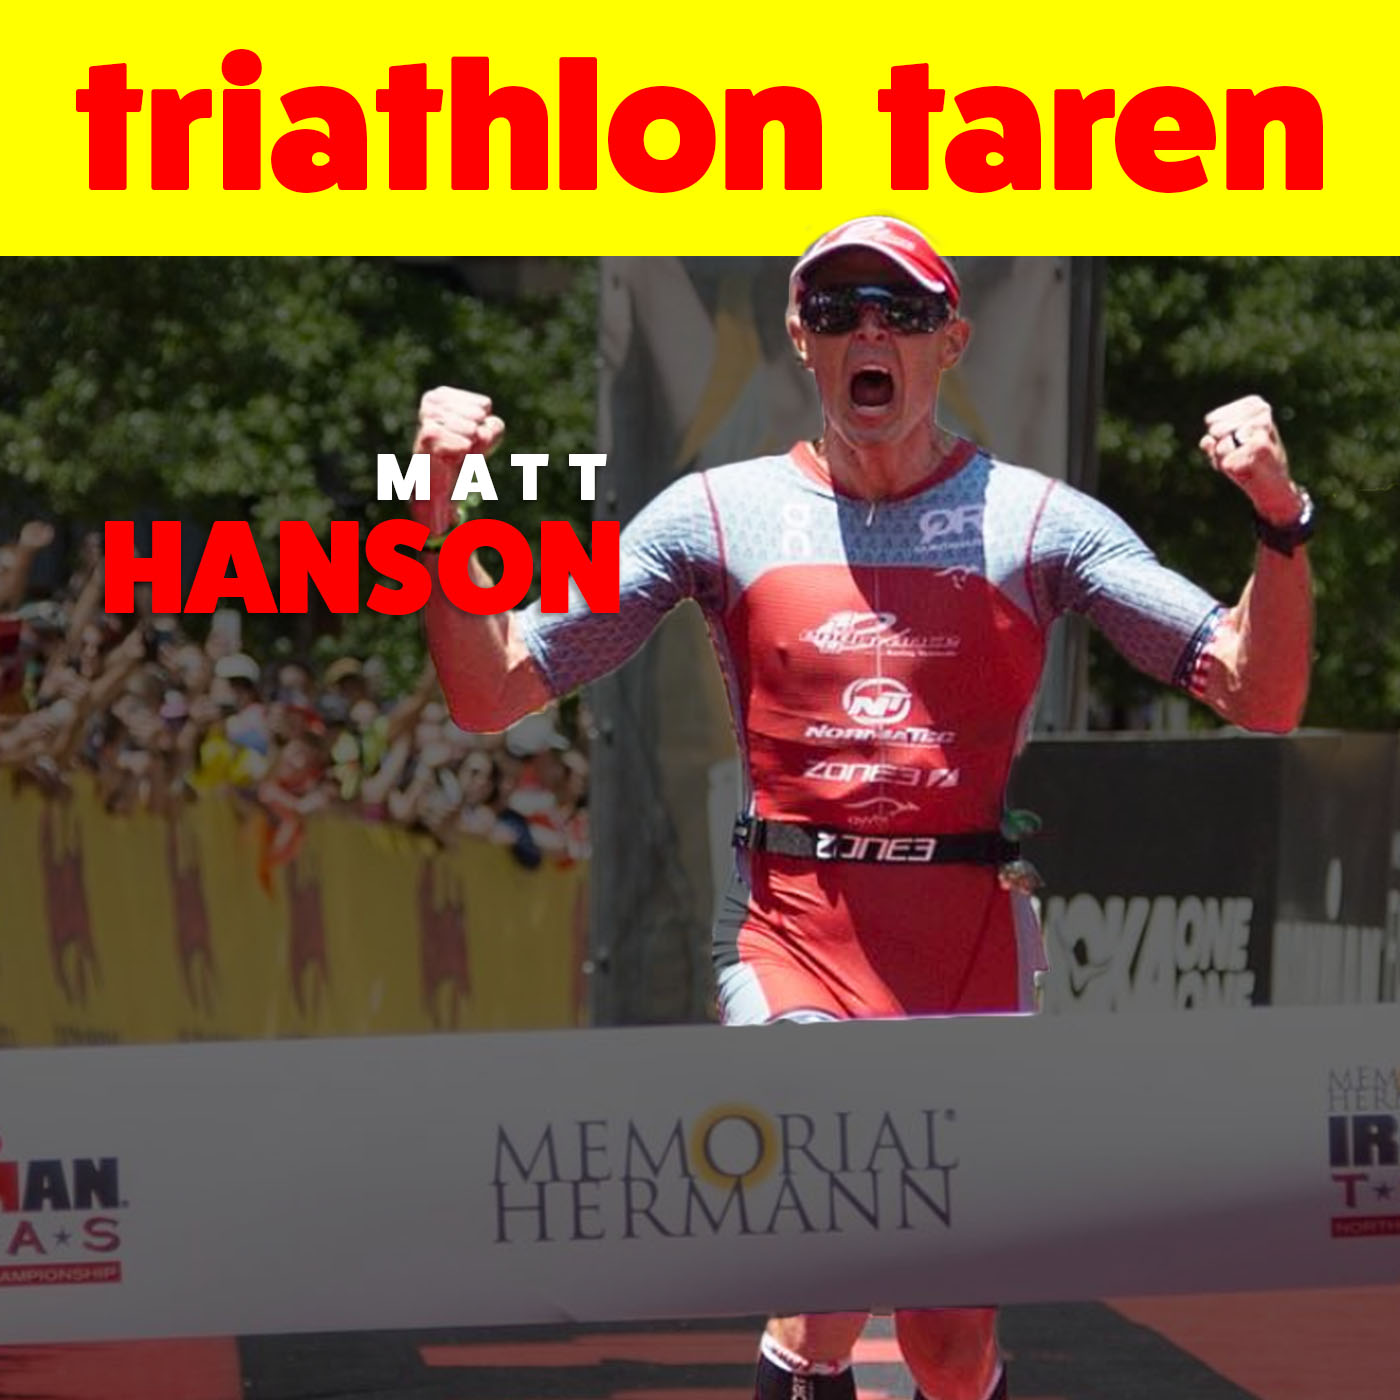 Winner of 2018 Ironman 70.3 CDA, Pro Triathlete Matt Hanson